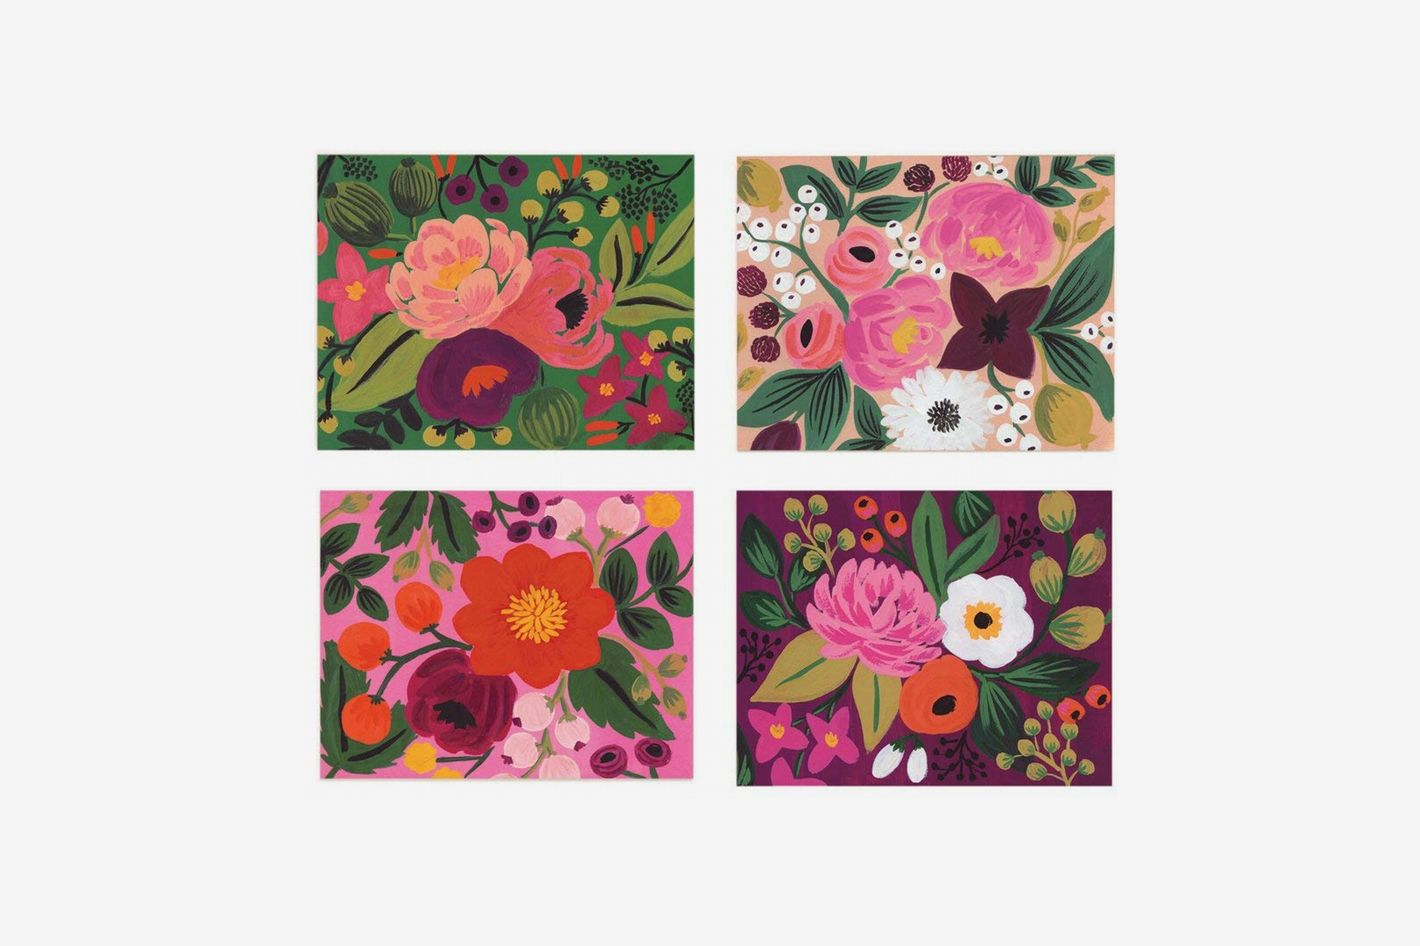 fdb031cba49b Assorted Vintage Blossom Notecards by Rifle Paper Co. - Set of 8 Cards and  Envelopes at Amazon